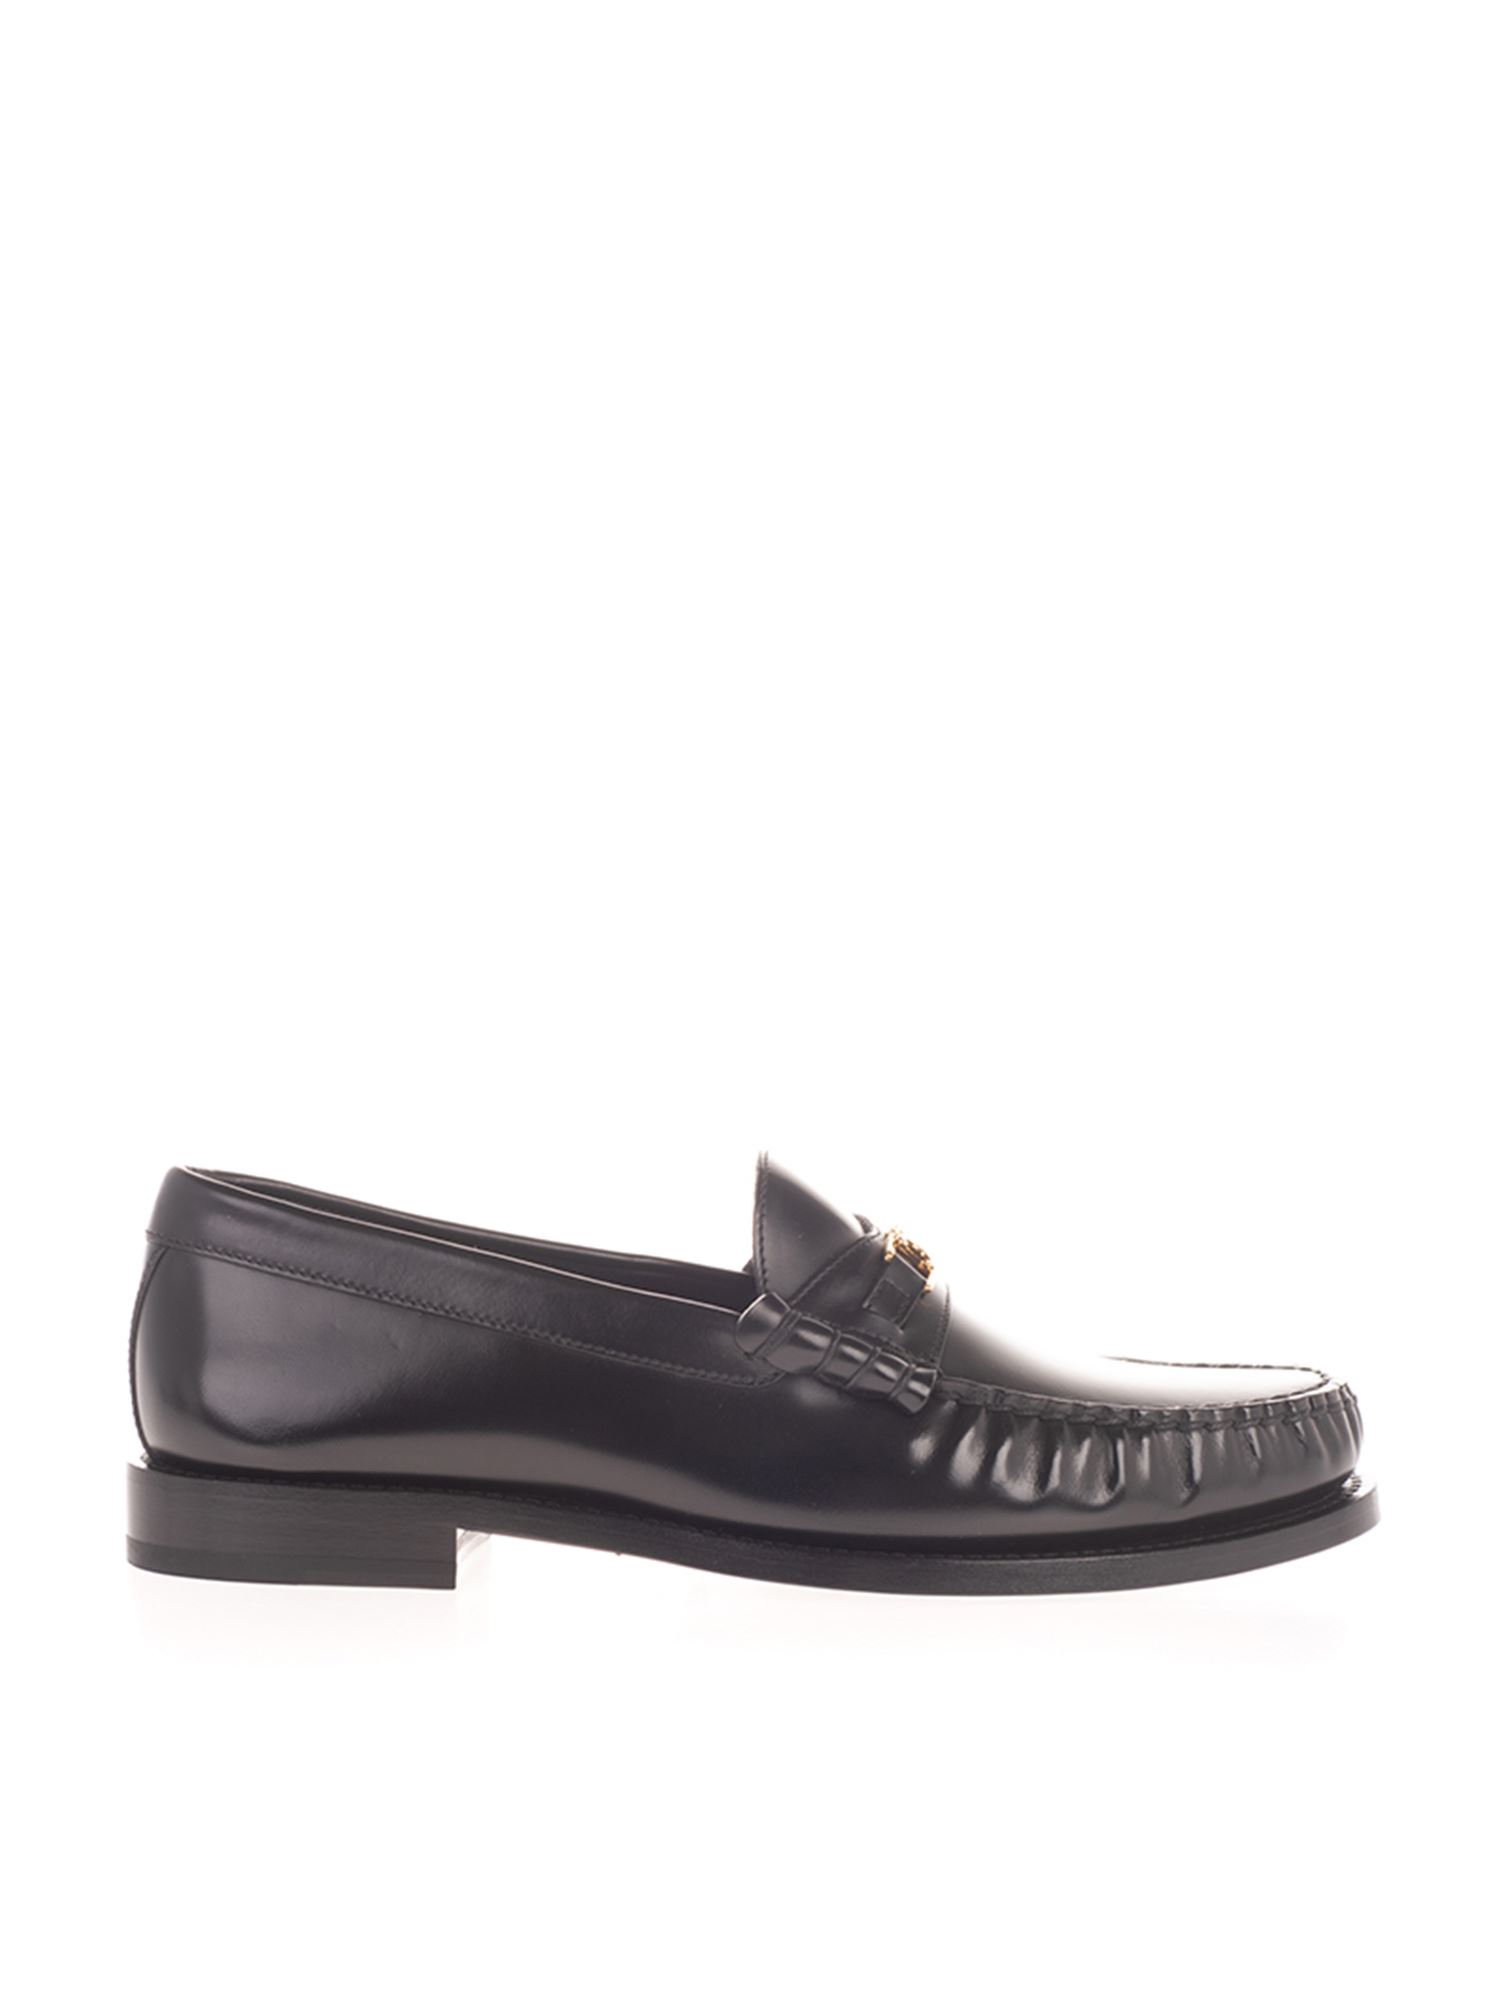 Celine TRIOMPHE LOAFERS IN BLACK